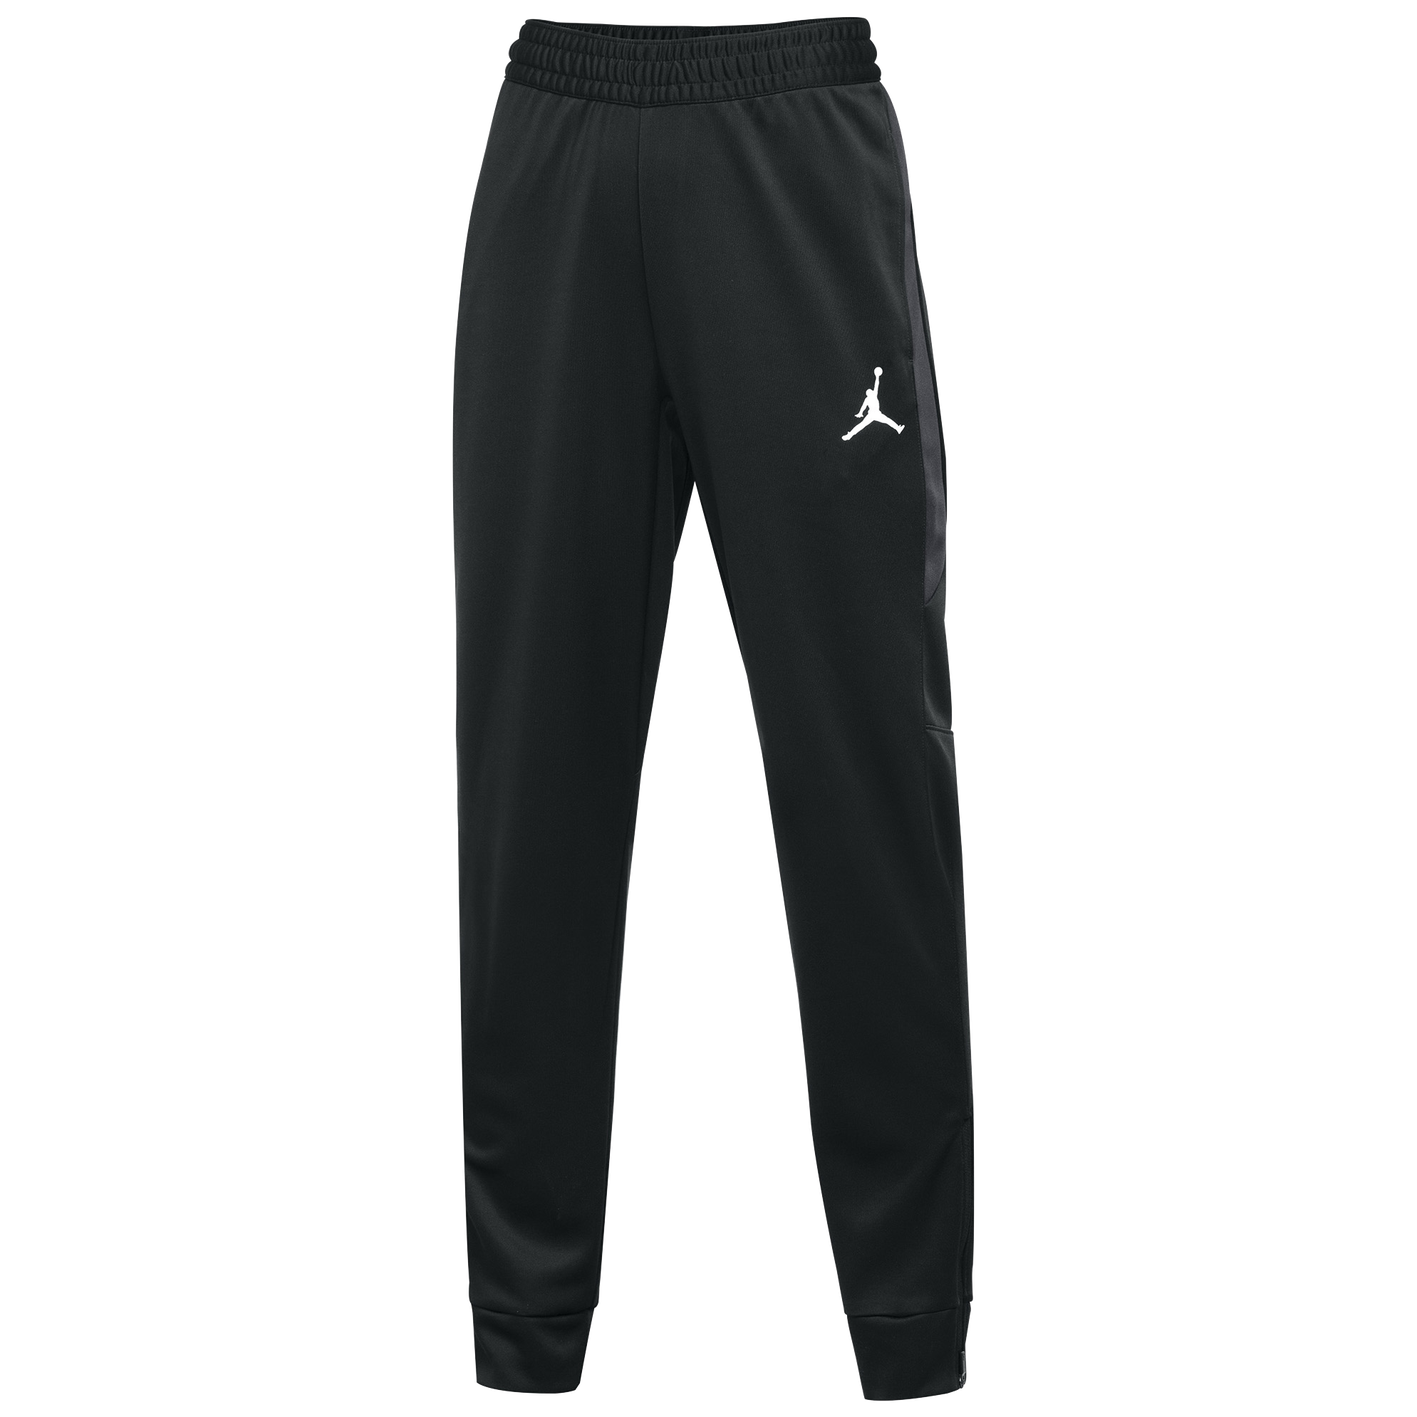 3954d597fc2b10 Jordan Team Basketball Flight Knit Pants - Women s - Basketball ...